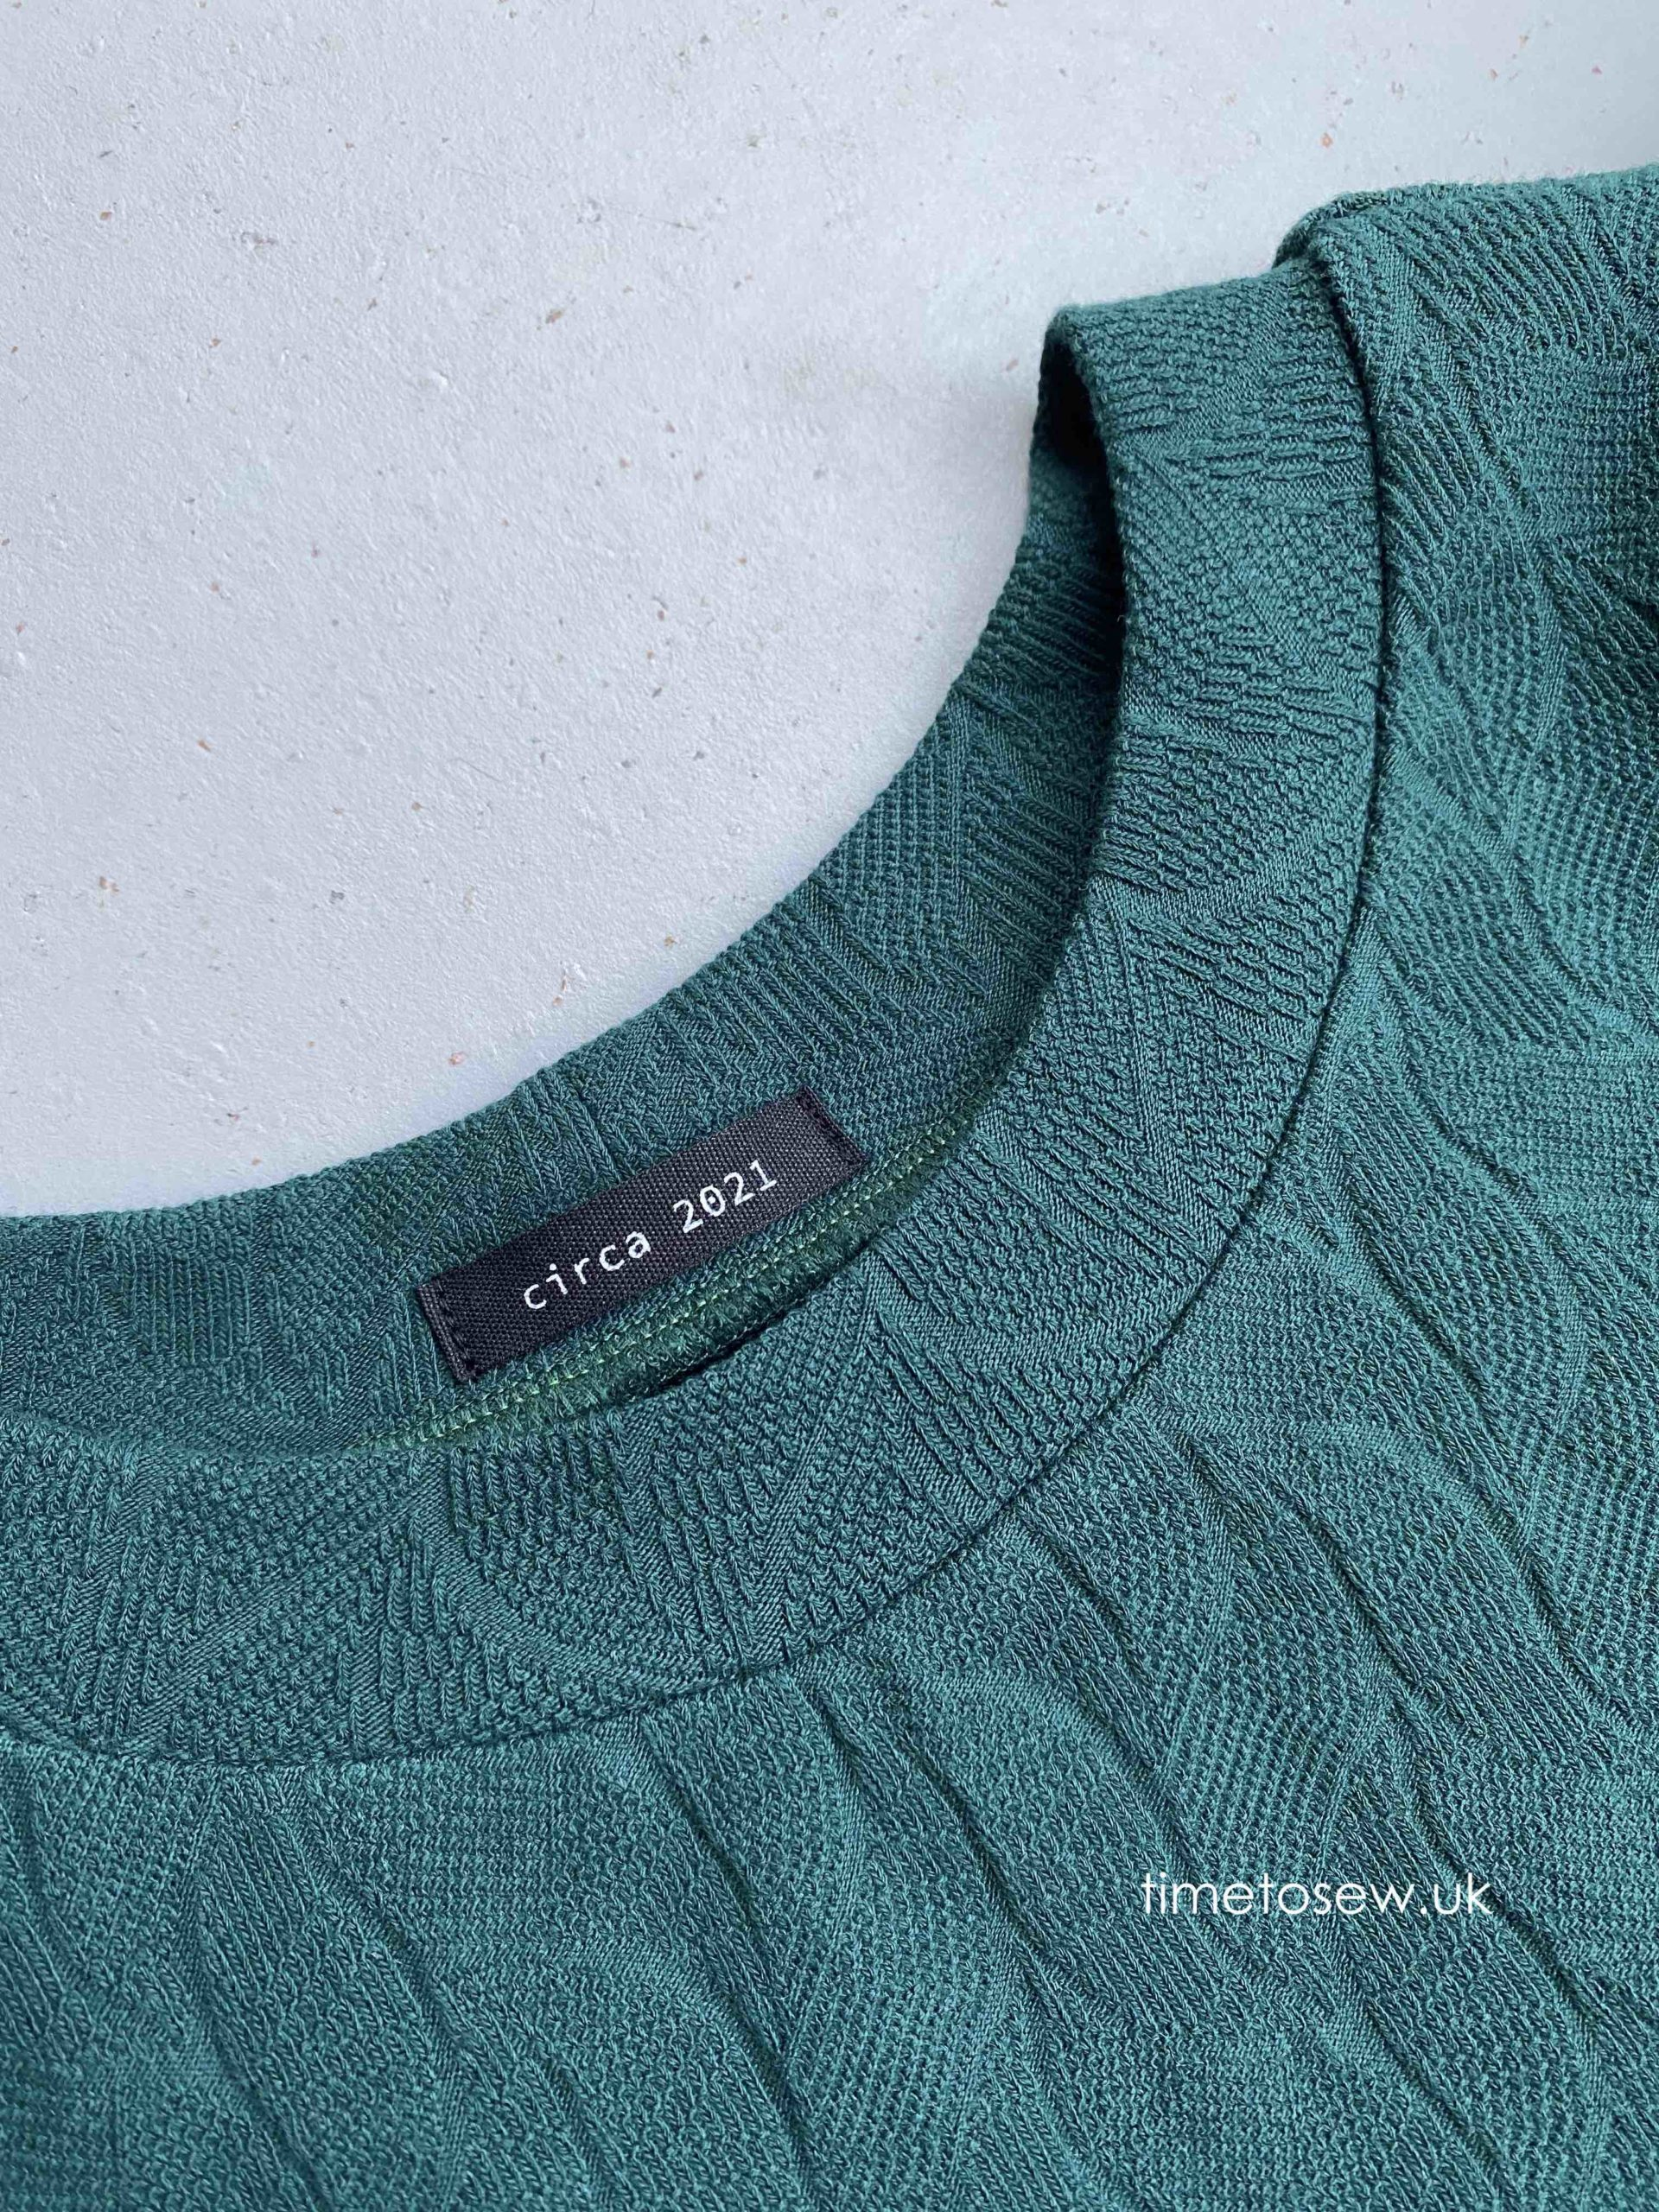 Neckline close up with 2021 label